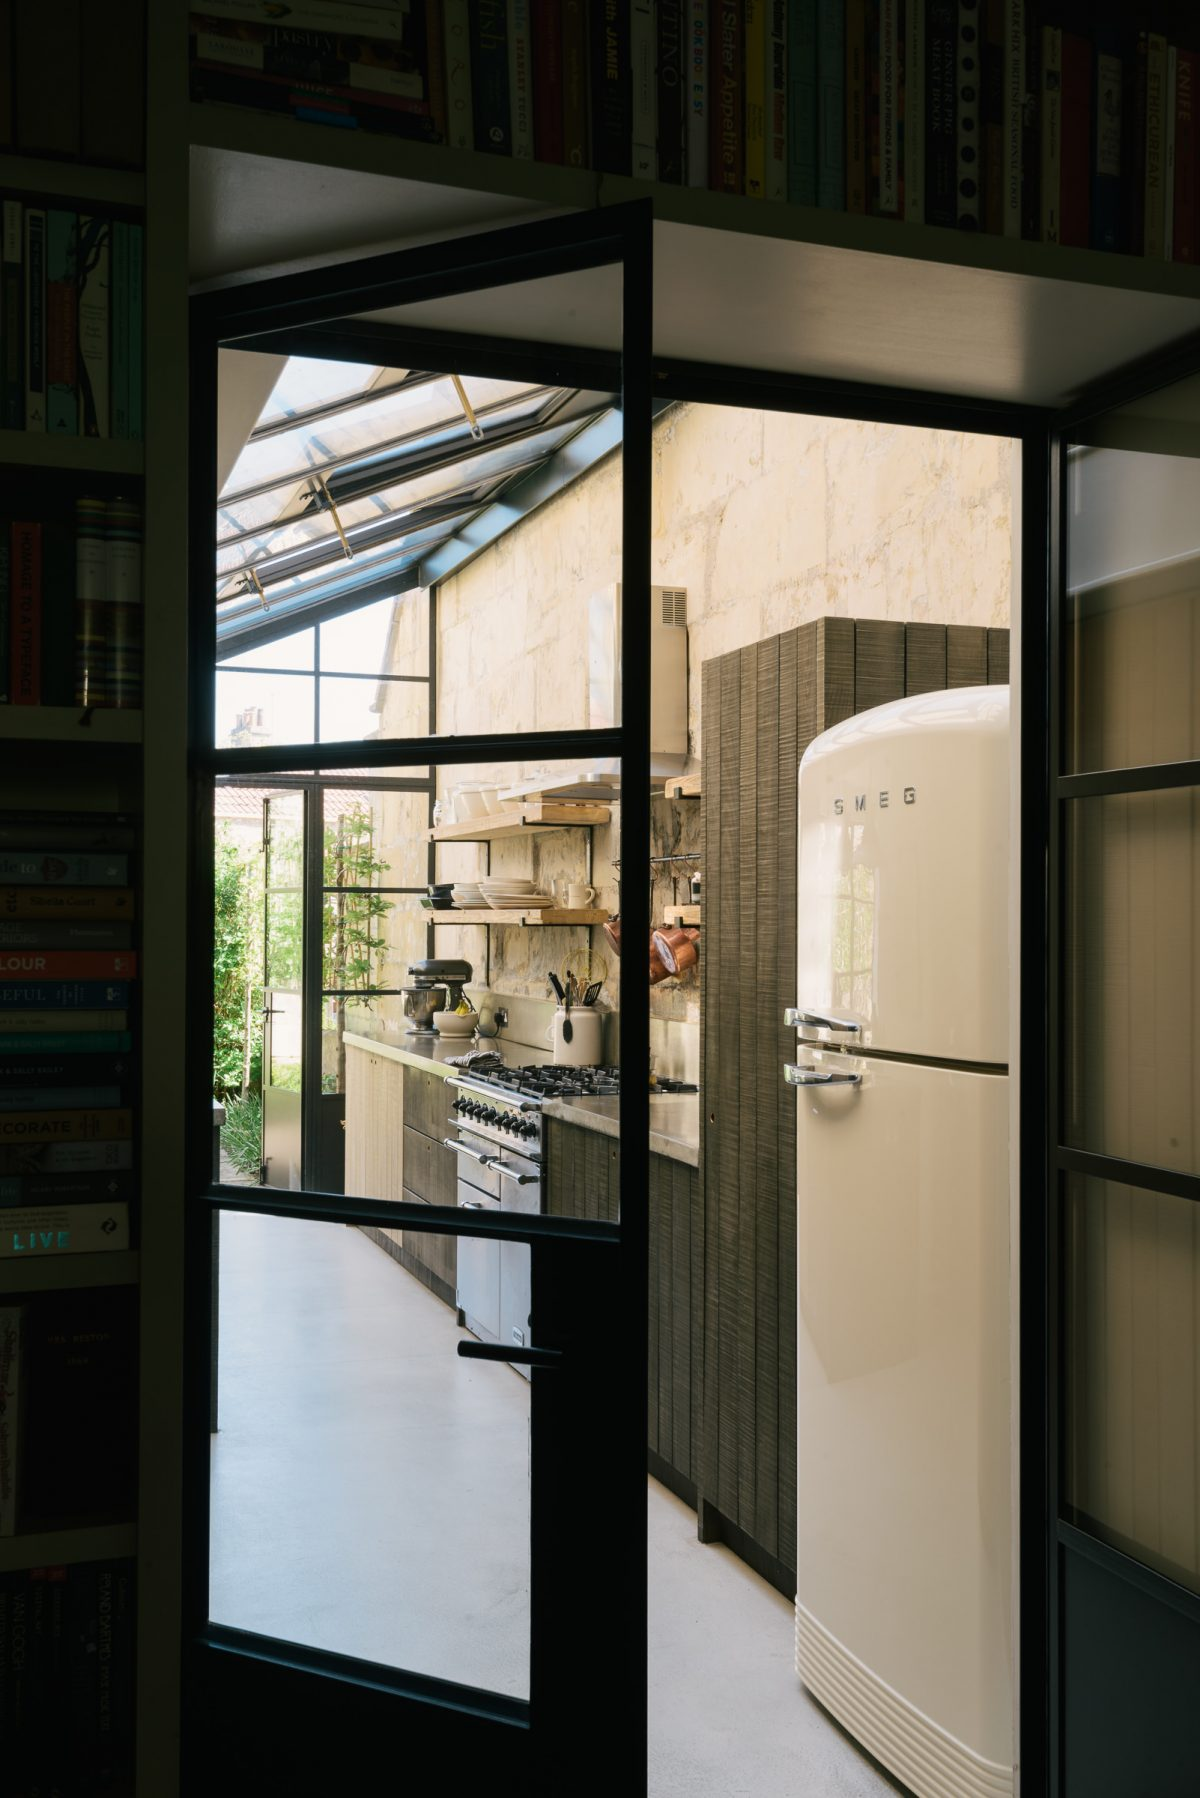 A view through Crittall-style doors into this cool Sebastian Cox Kitchen.